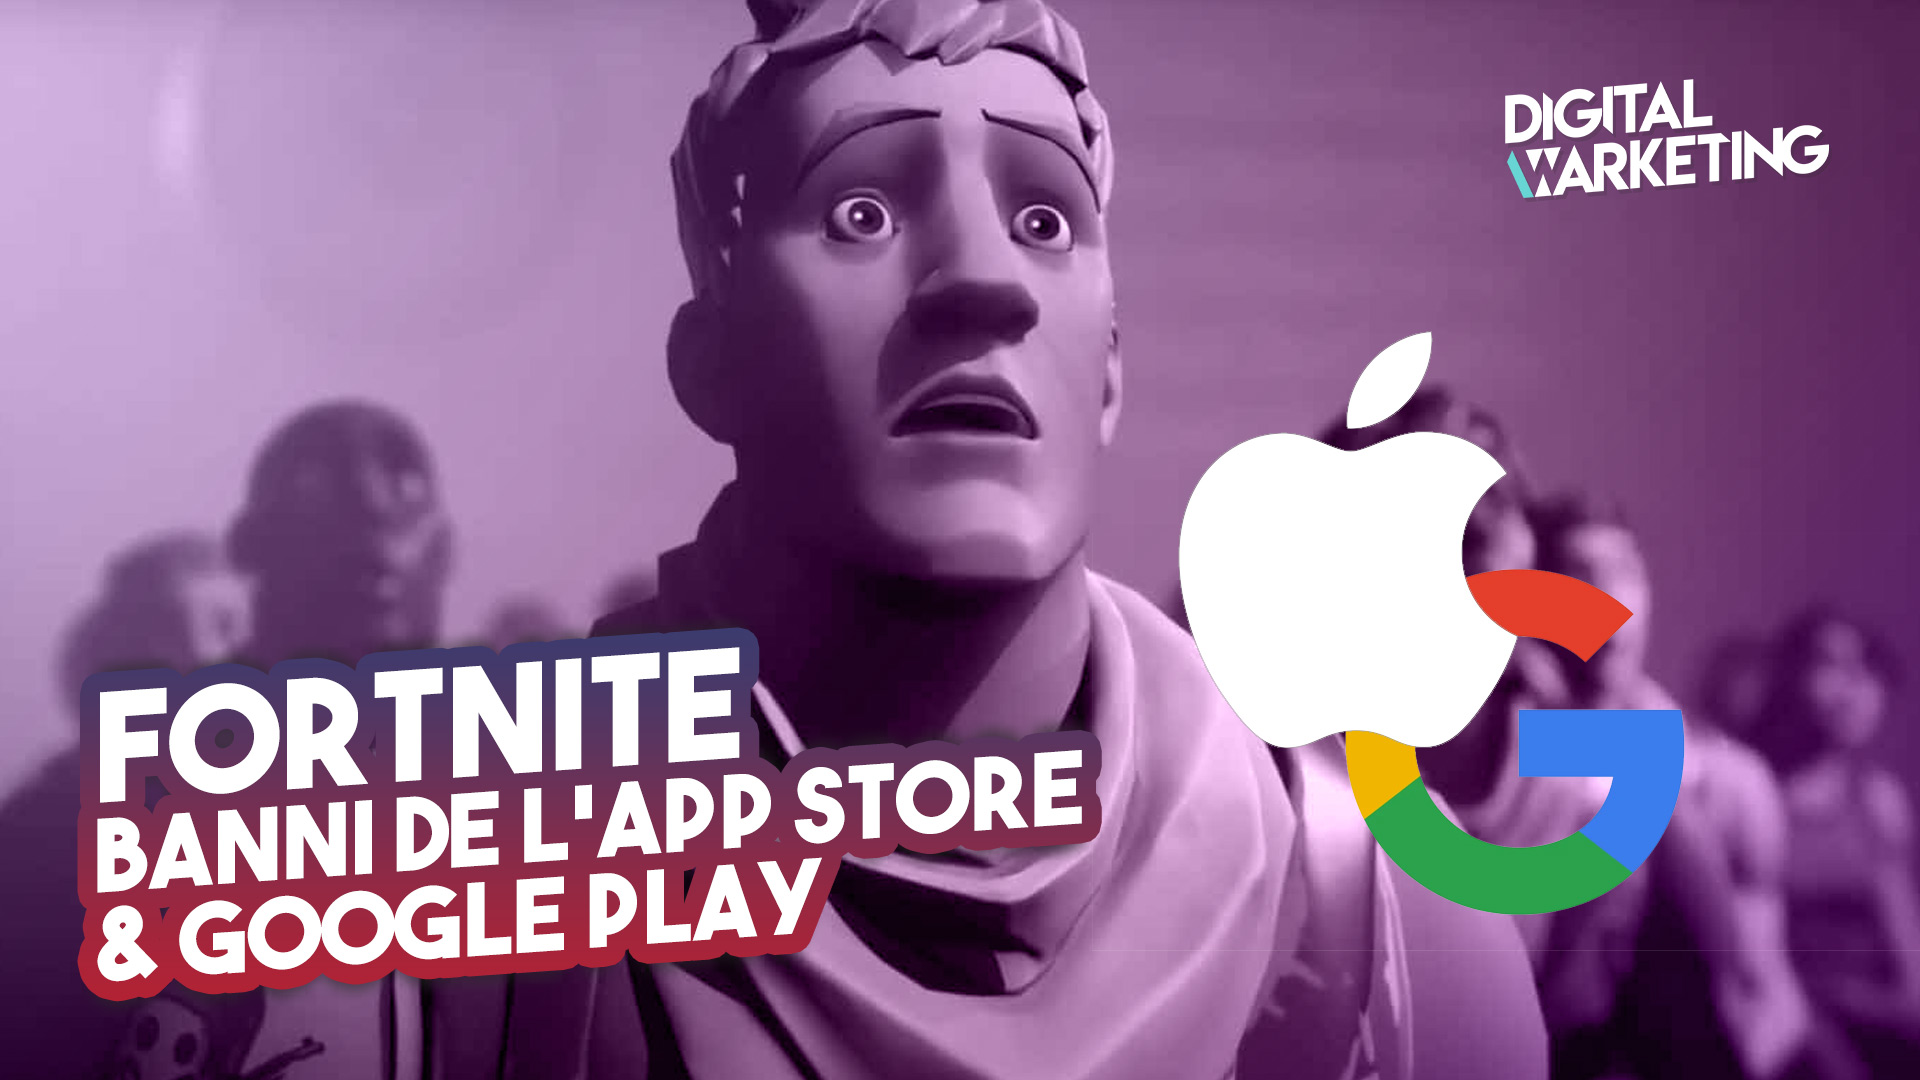 Fortnite banni des app stores Apple et Google – #FreeFortnite